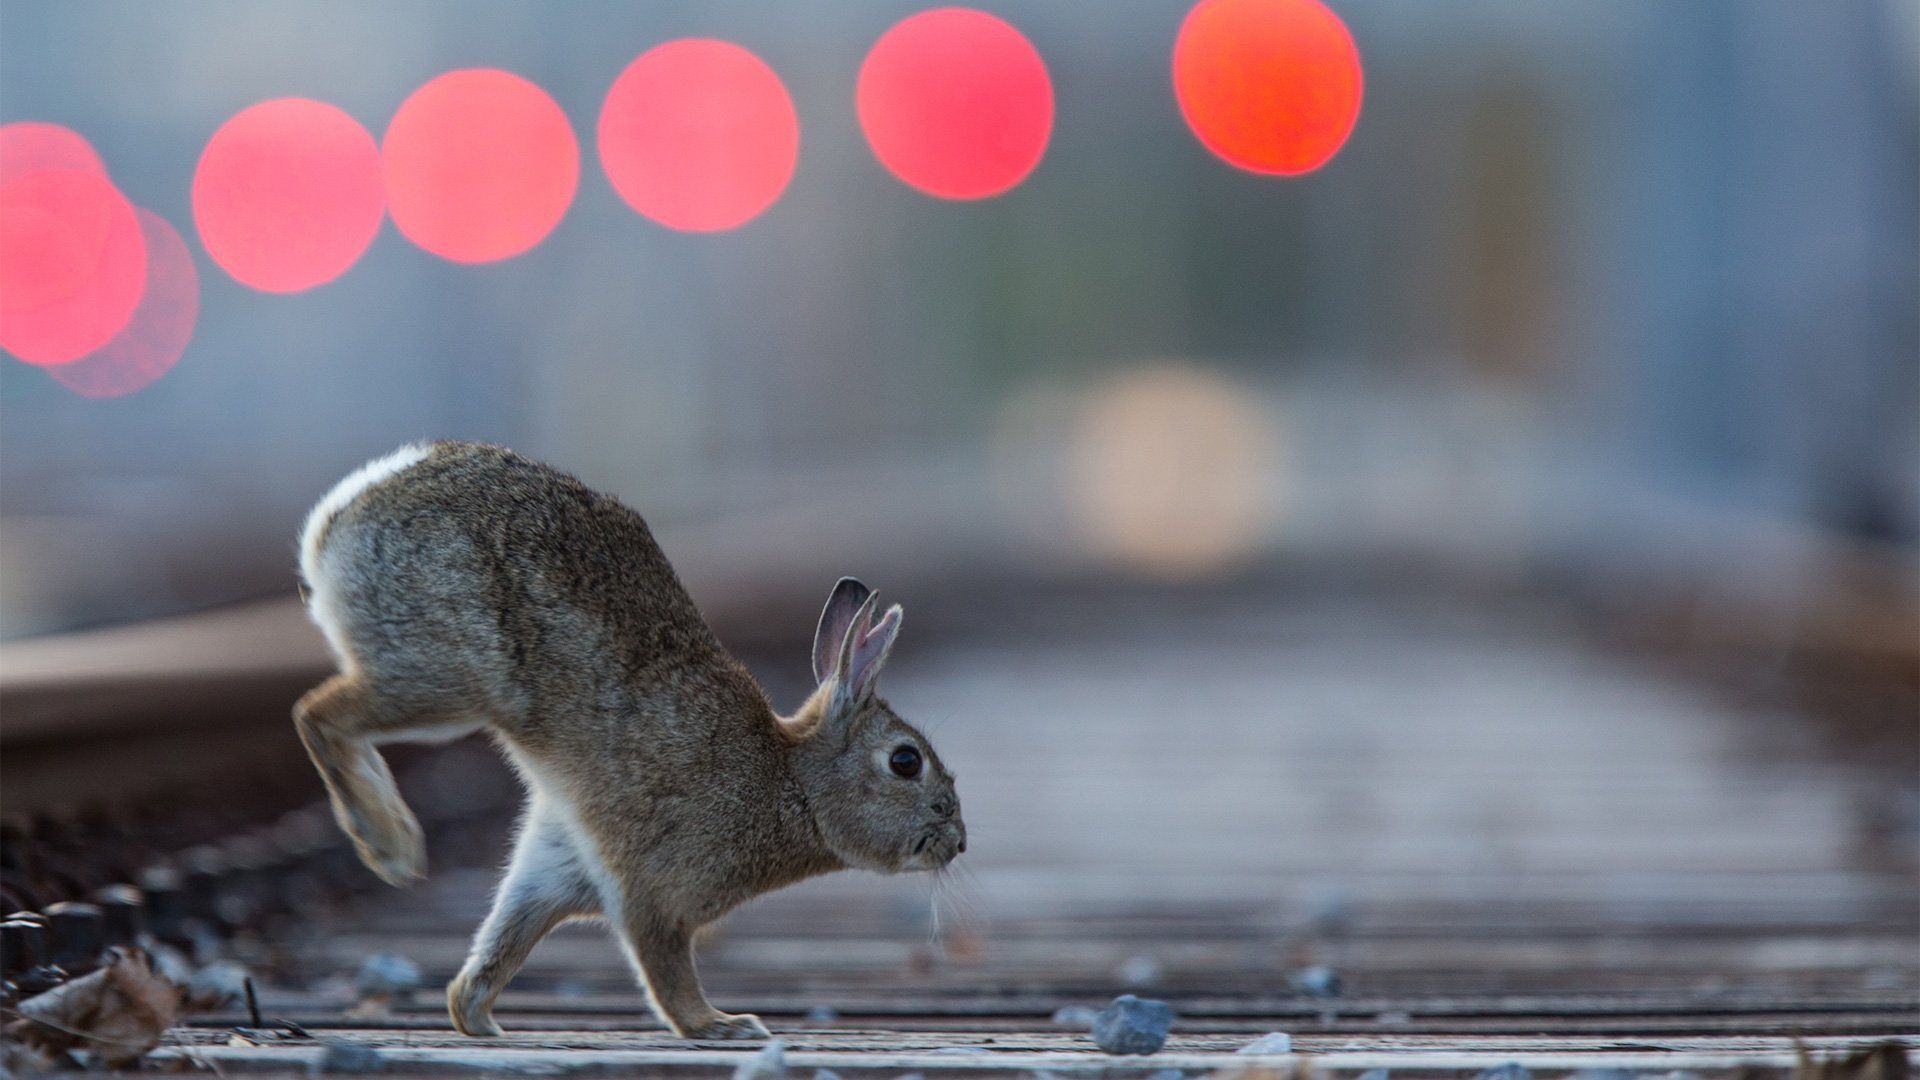 A rabbit runs across a train track in Vienna.